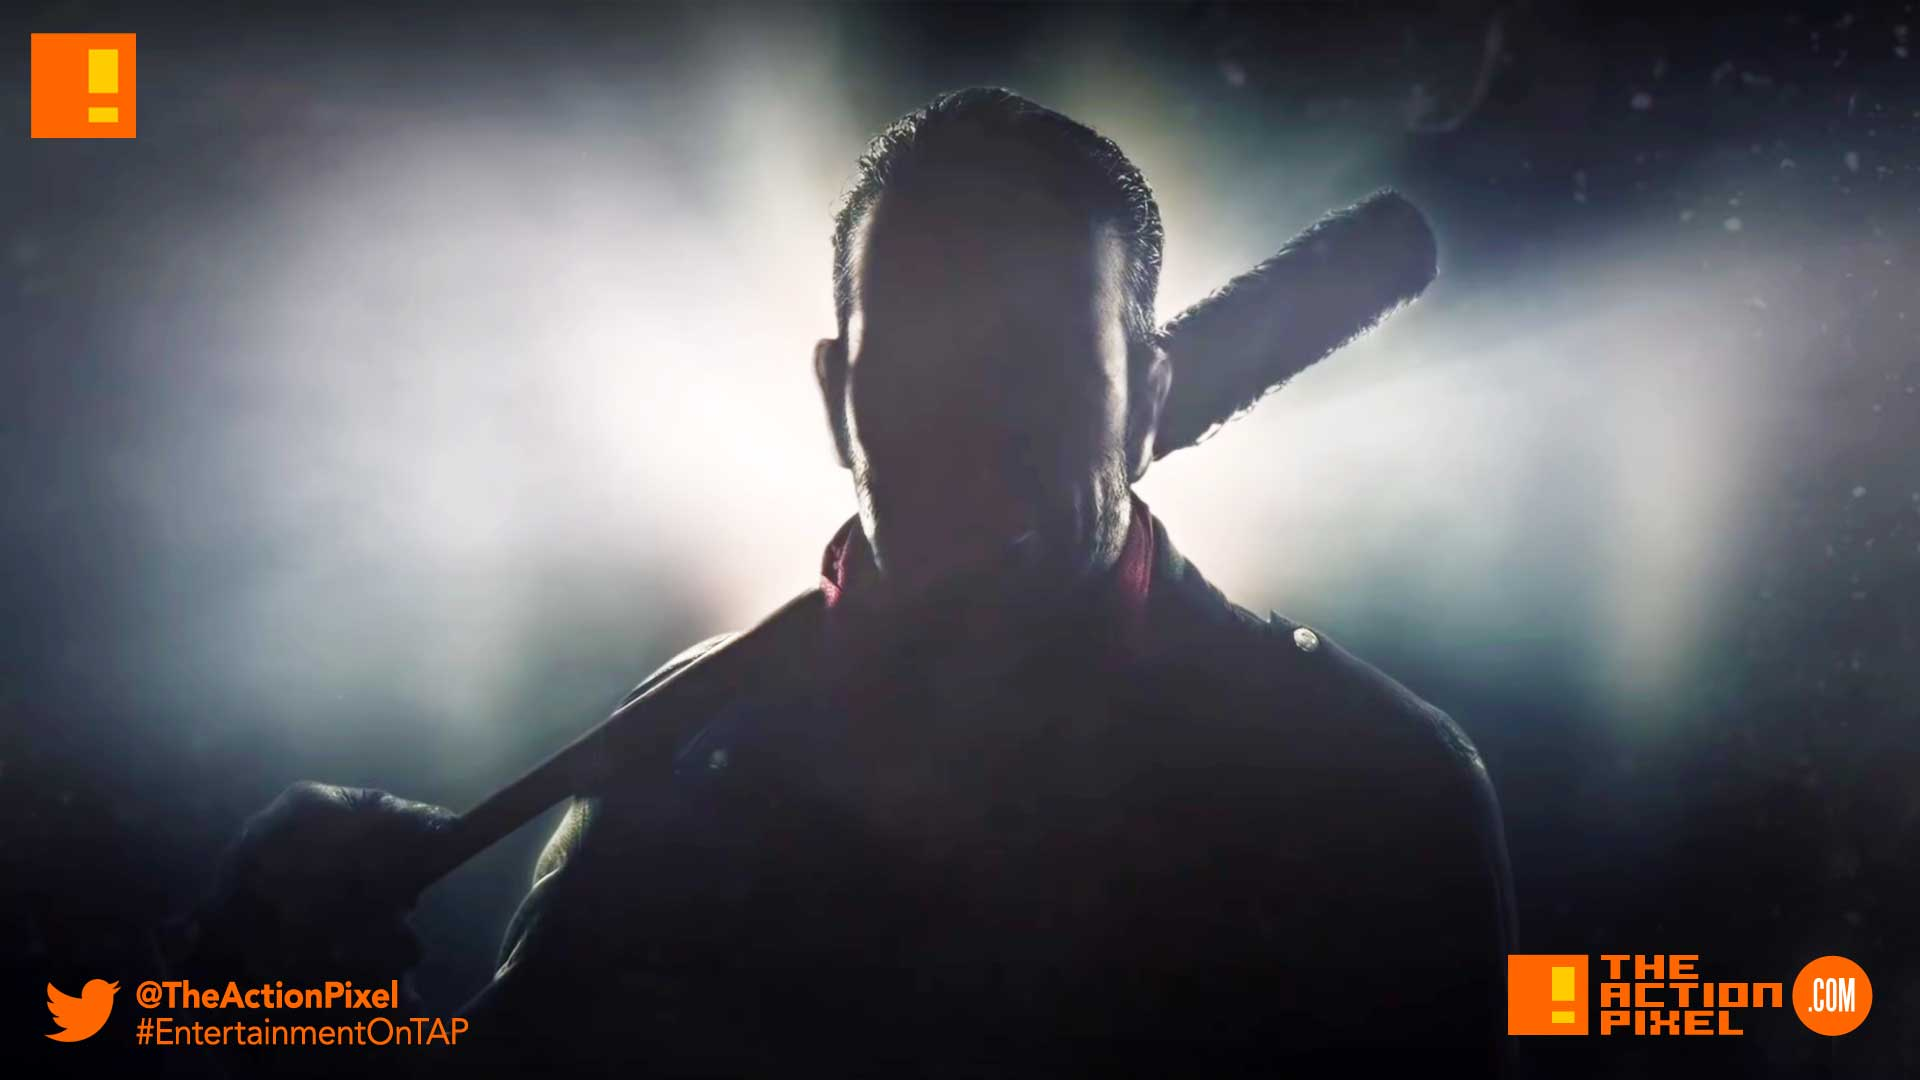 negan, tekken 7, twd, the walking dead, entertainment on tap, trailer ,season 2,